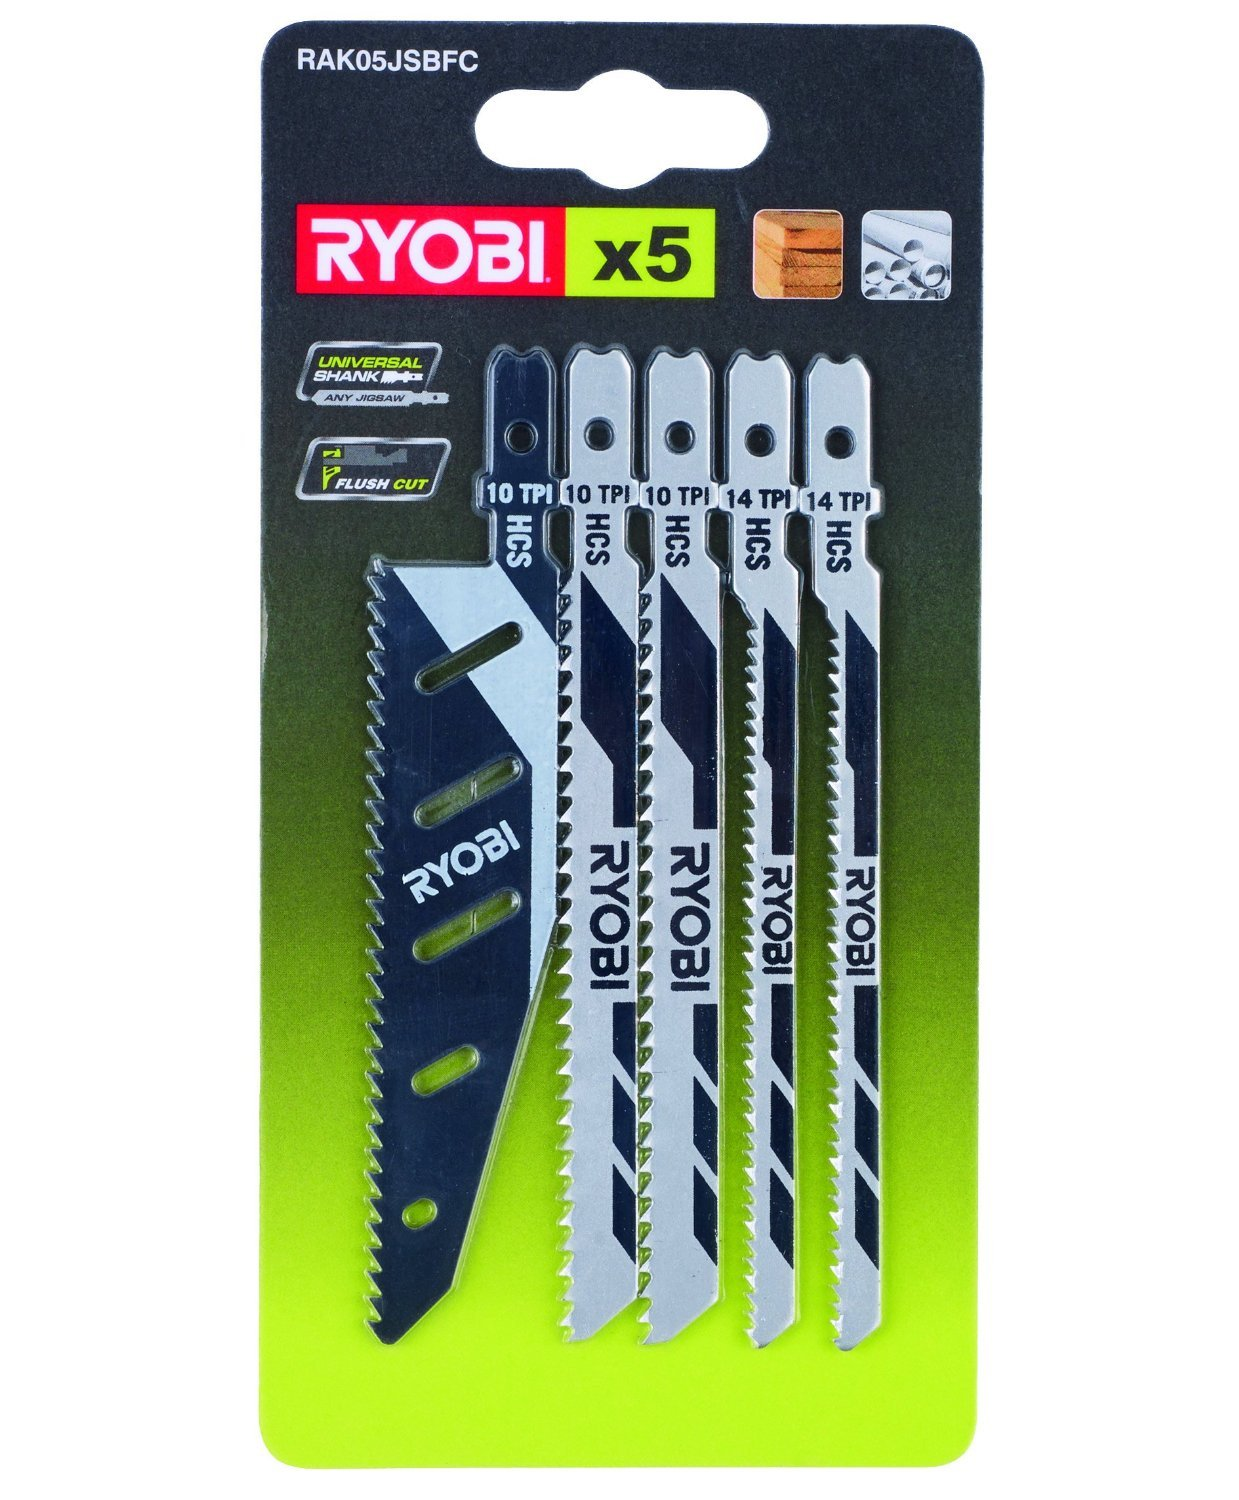 Ryobi rak05jsbfc tile specialty kit 5 piece 691044937973 ebay product description 5 piece jigsaw blade keyboard keysfo Gallery